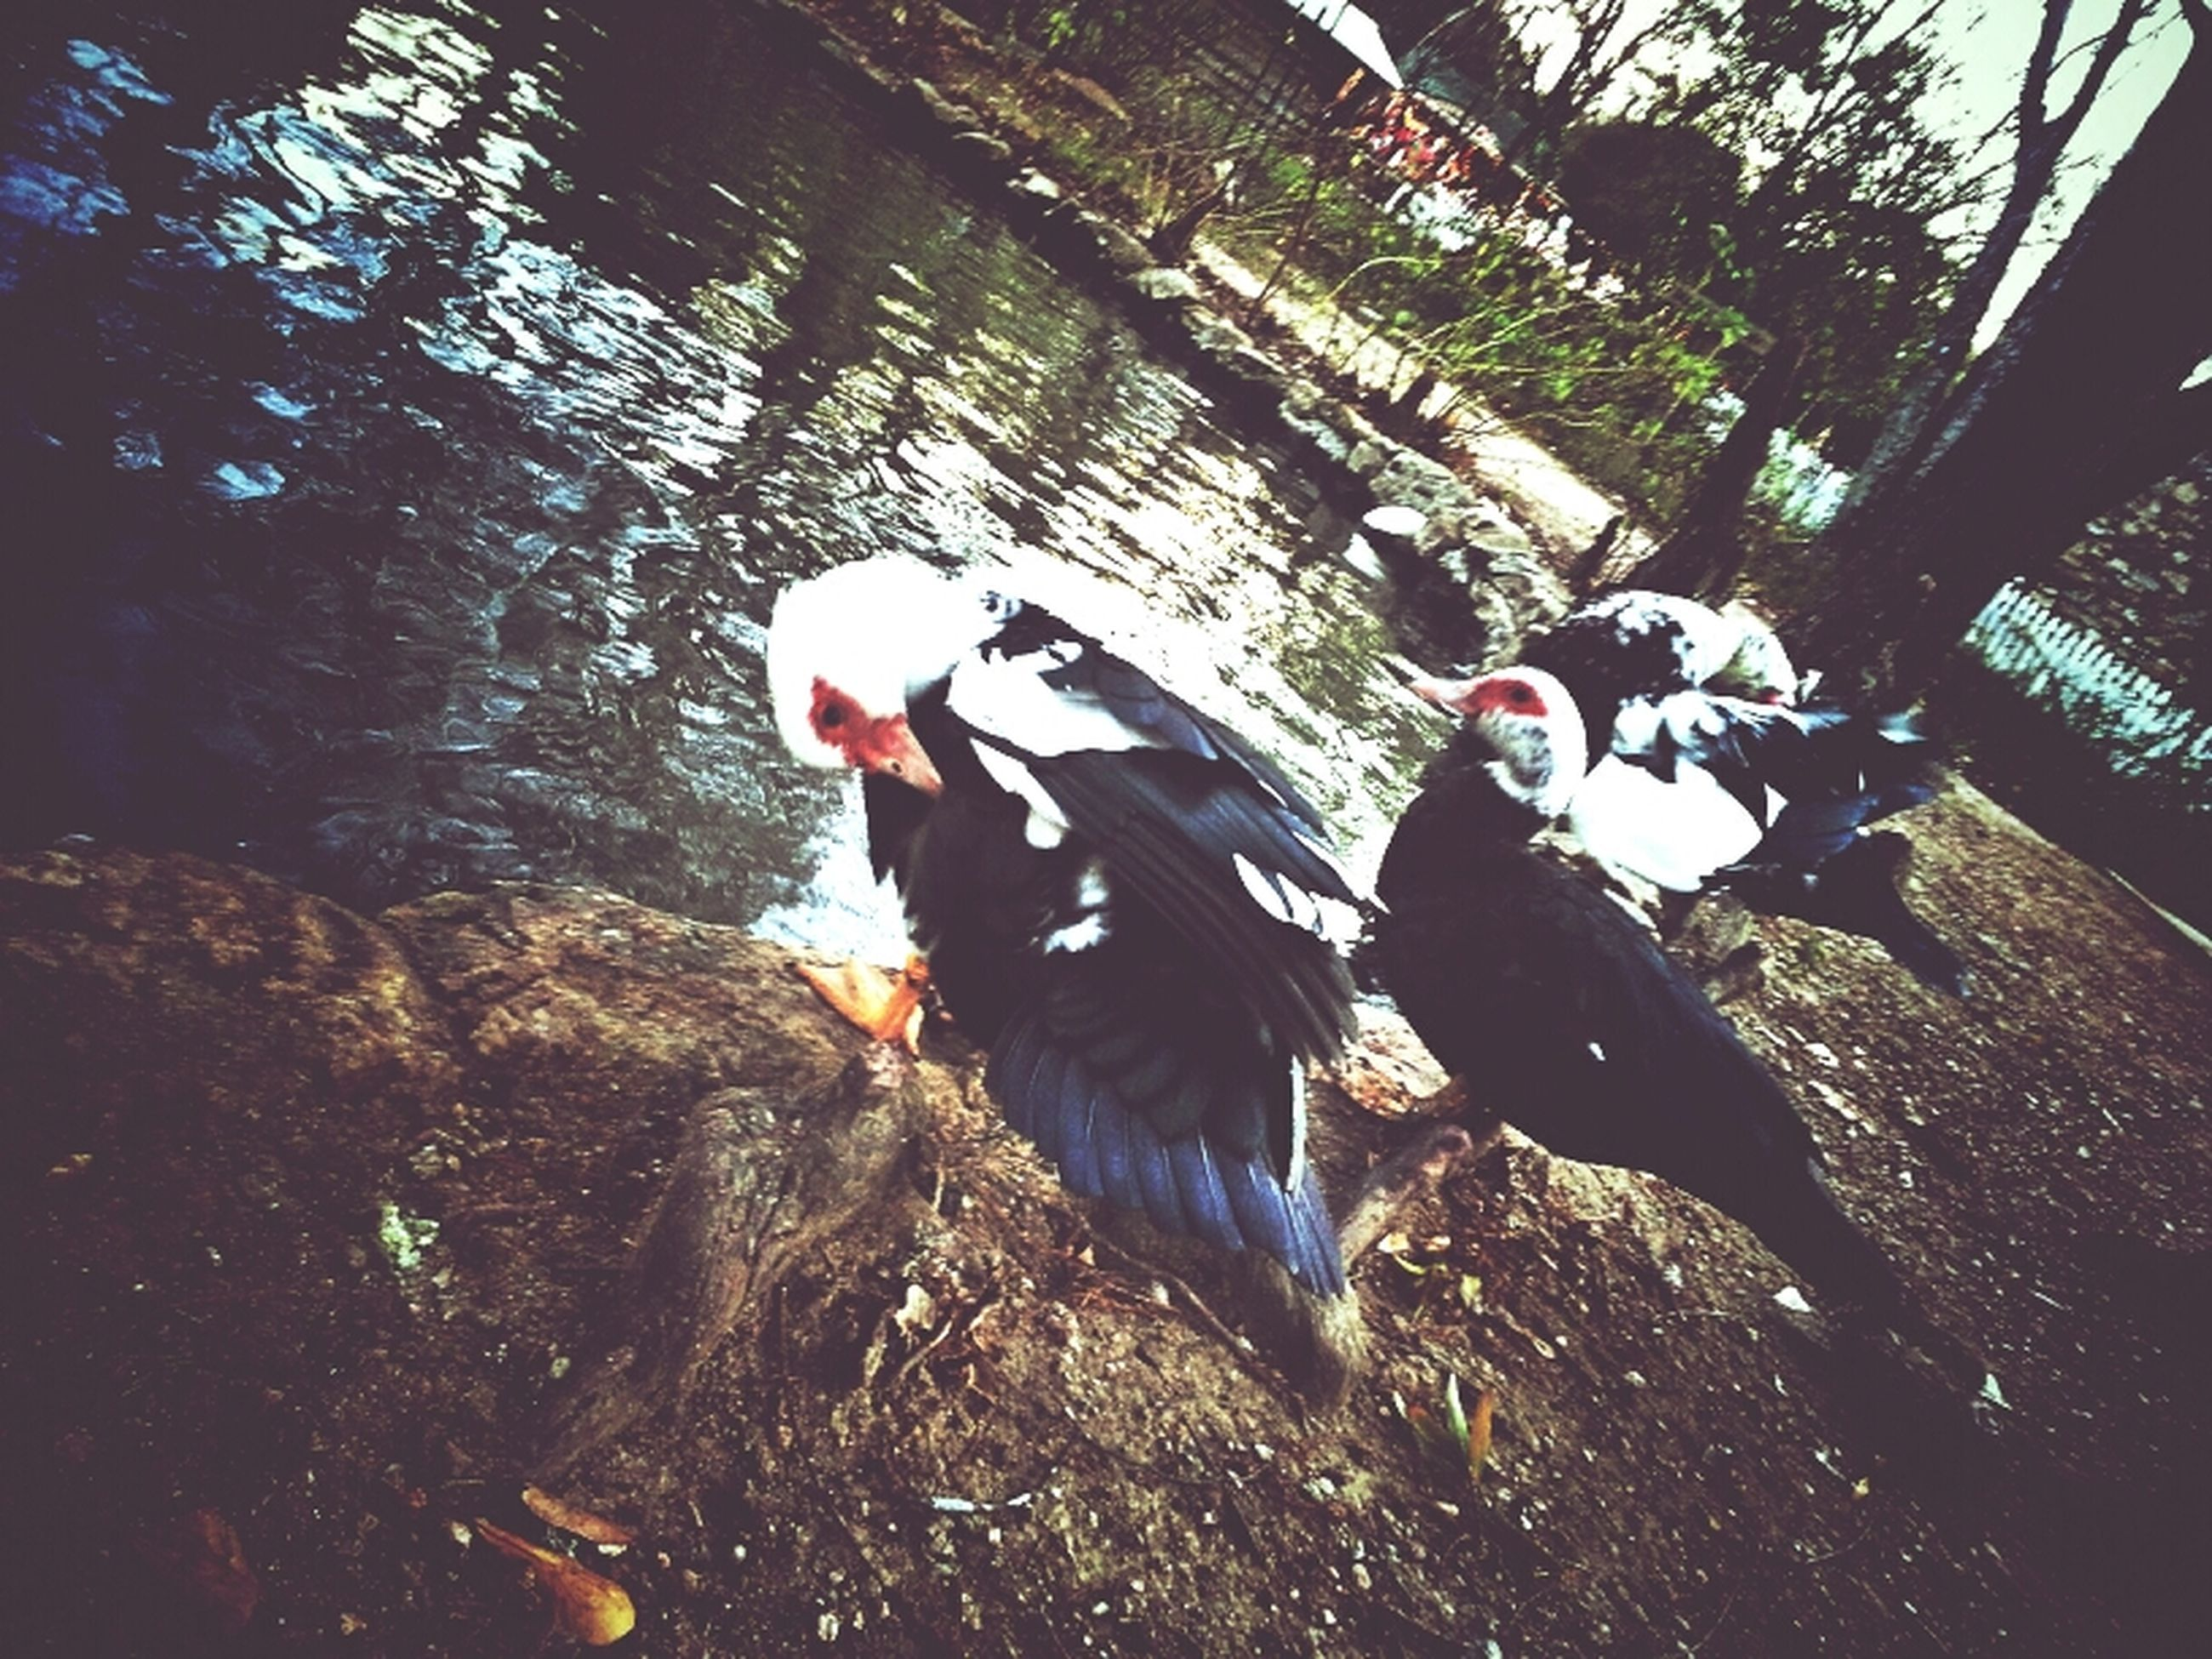 animal themes, animals in the wild, bird, wildlife, water, swimming, one animal, high angle view, nature, two animals, fish, outdoors, duck, sunlight, day, no people, beauty in nature, zoology, spread wings, reflection